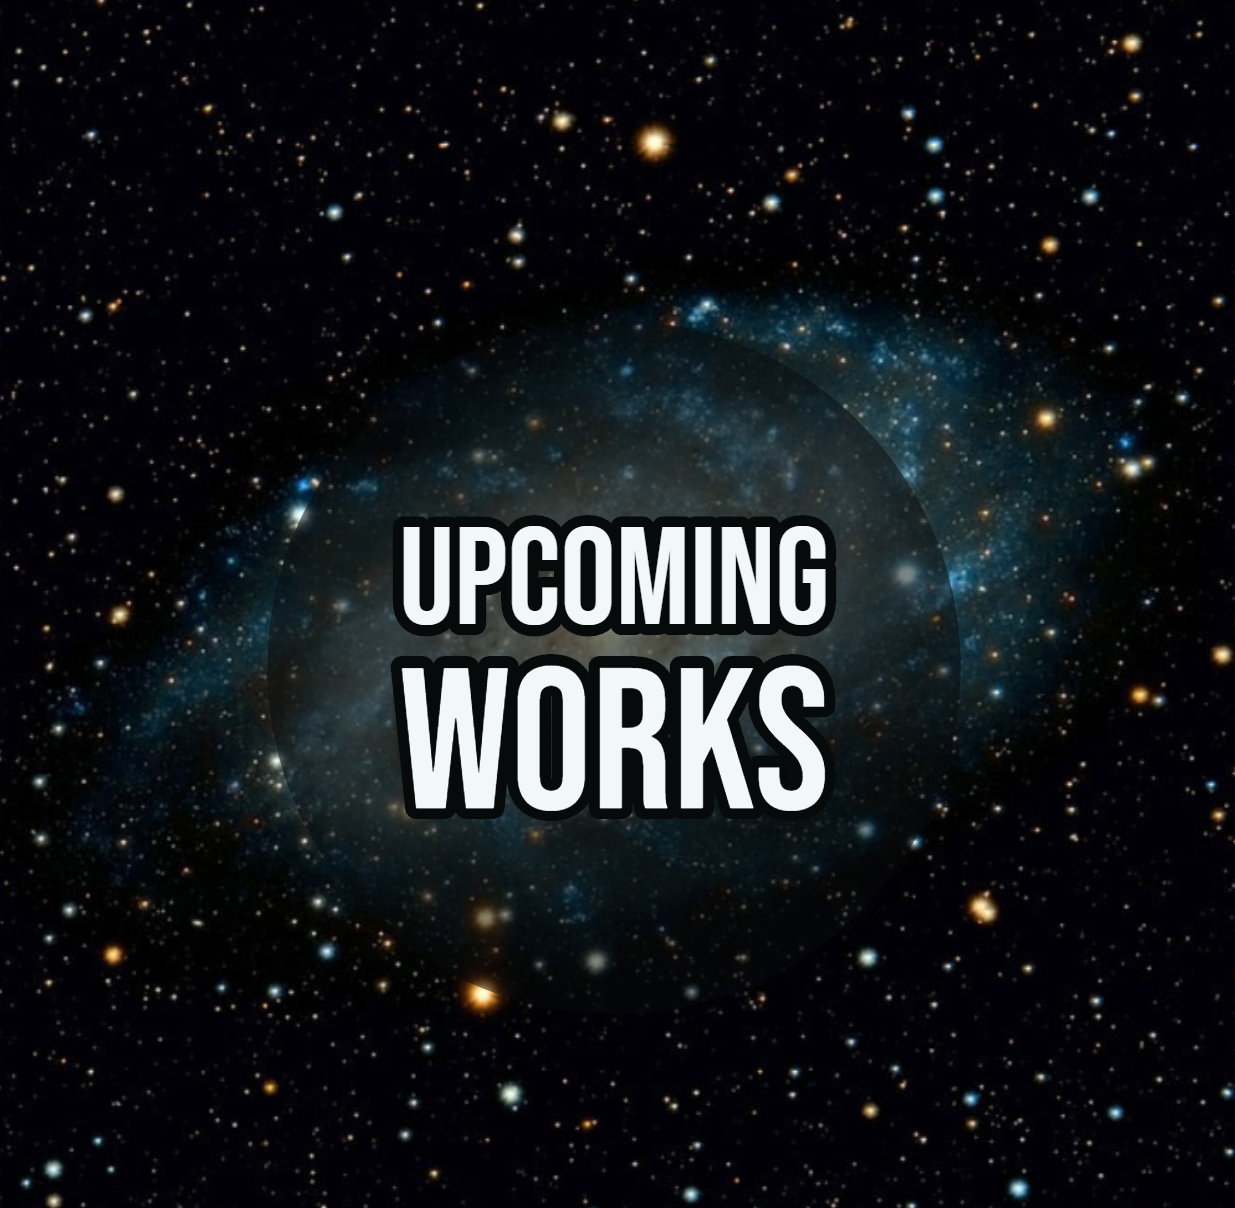 Upcoming Works